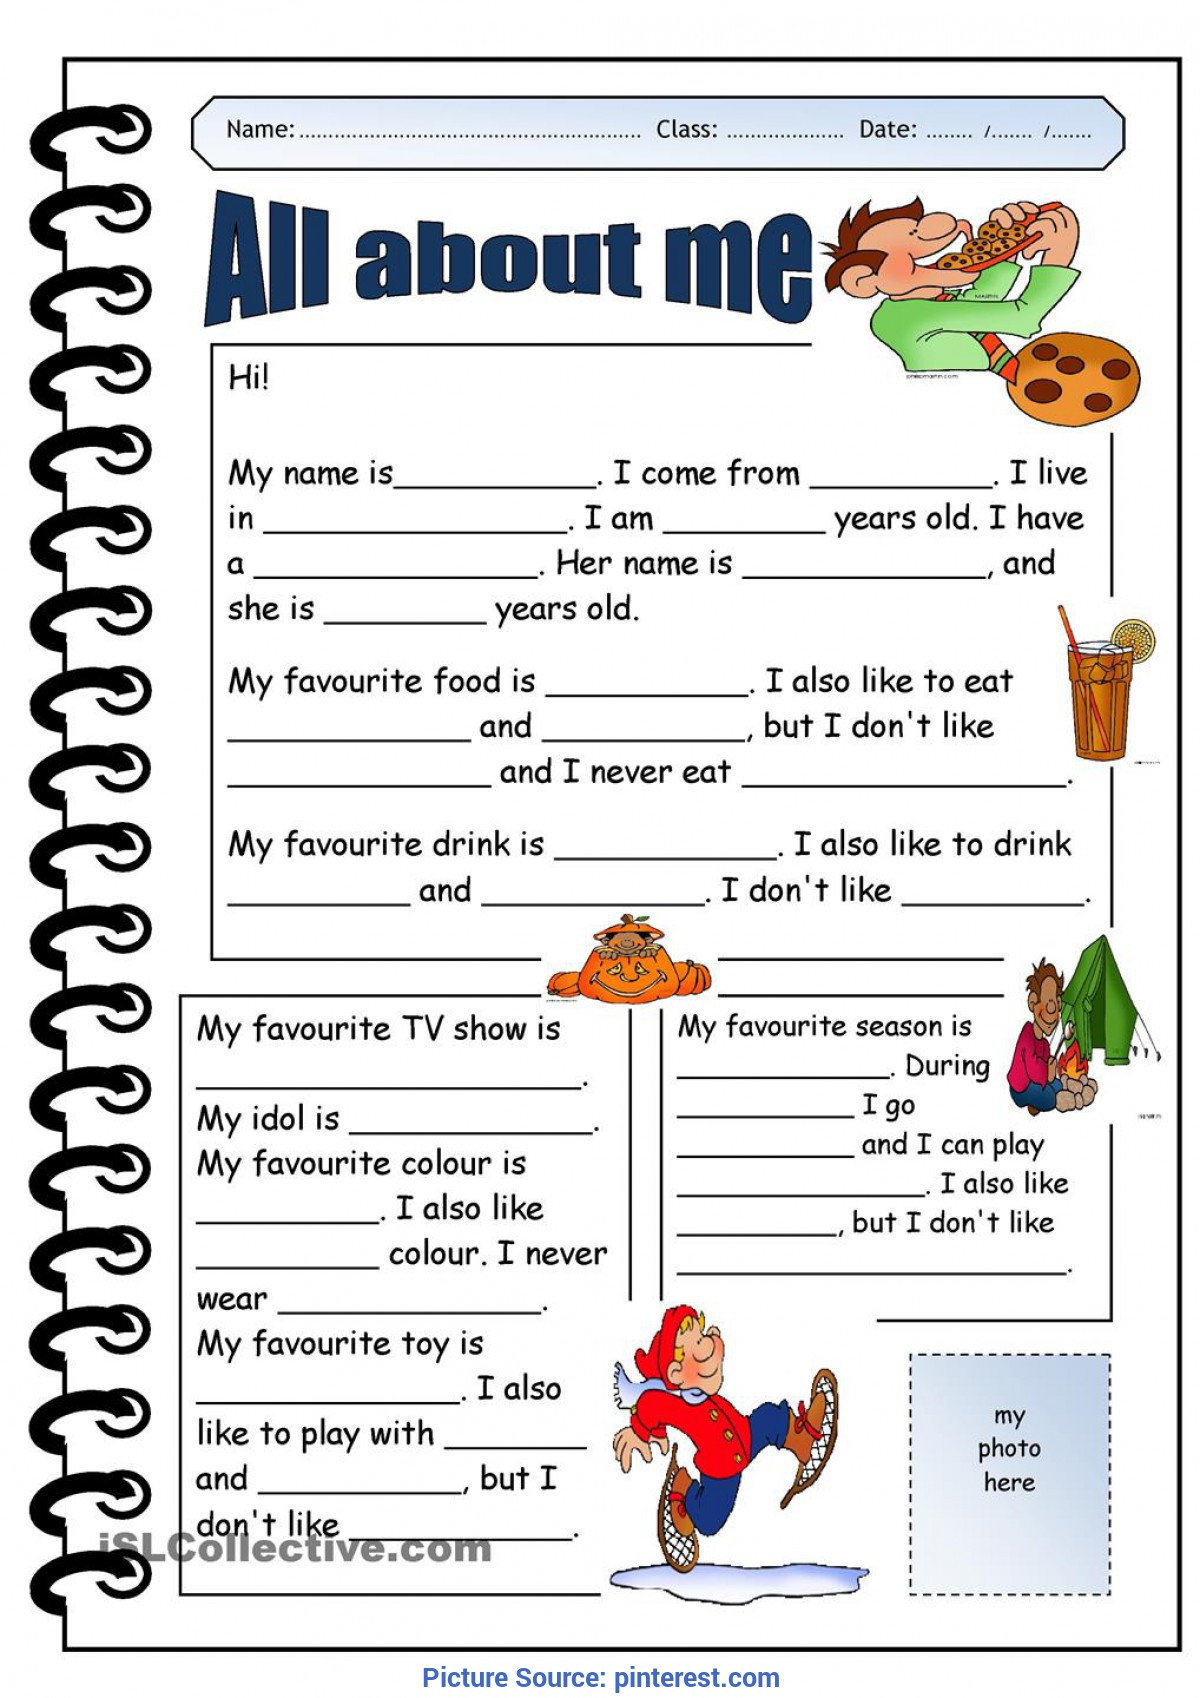 hight resolution of All About Me Worksheet For Middle School Students - Promotiontablecovers